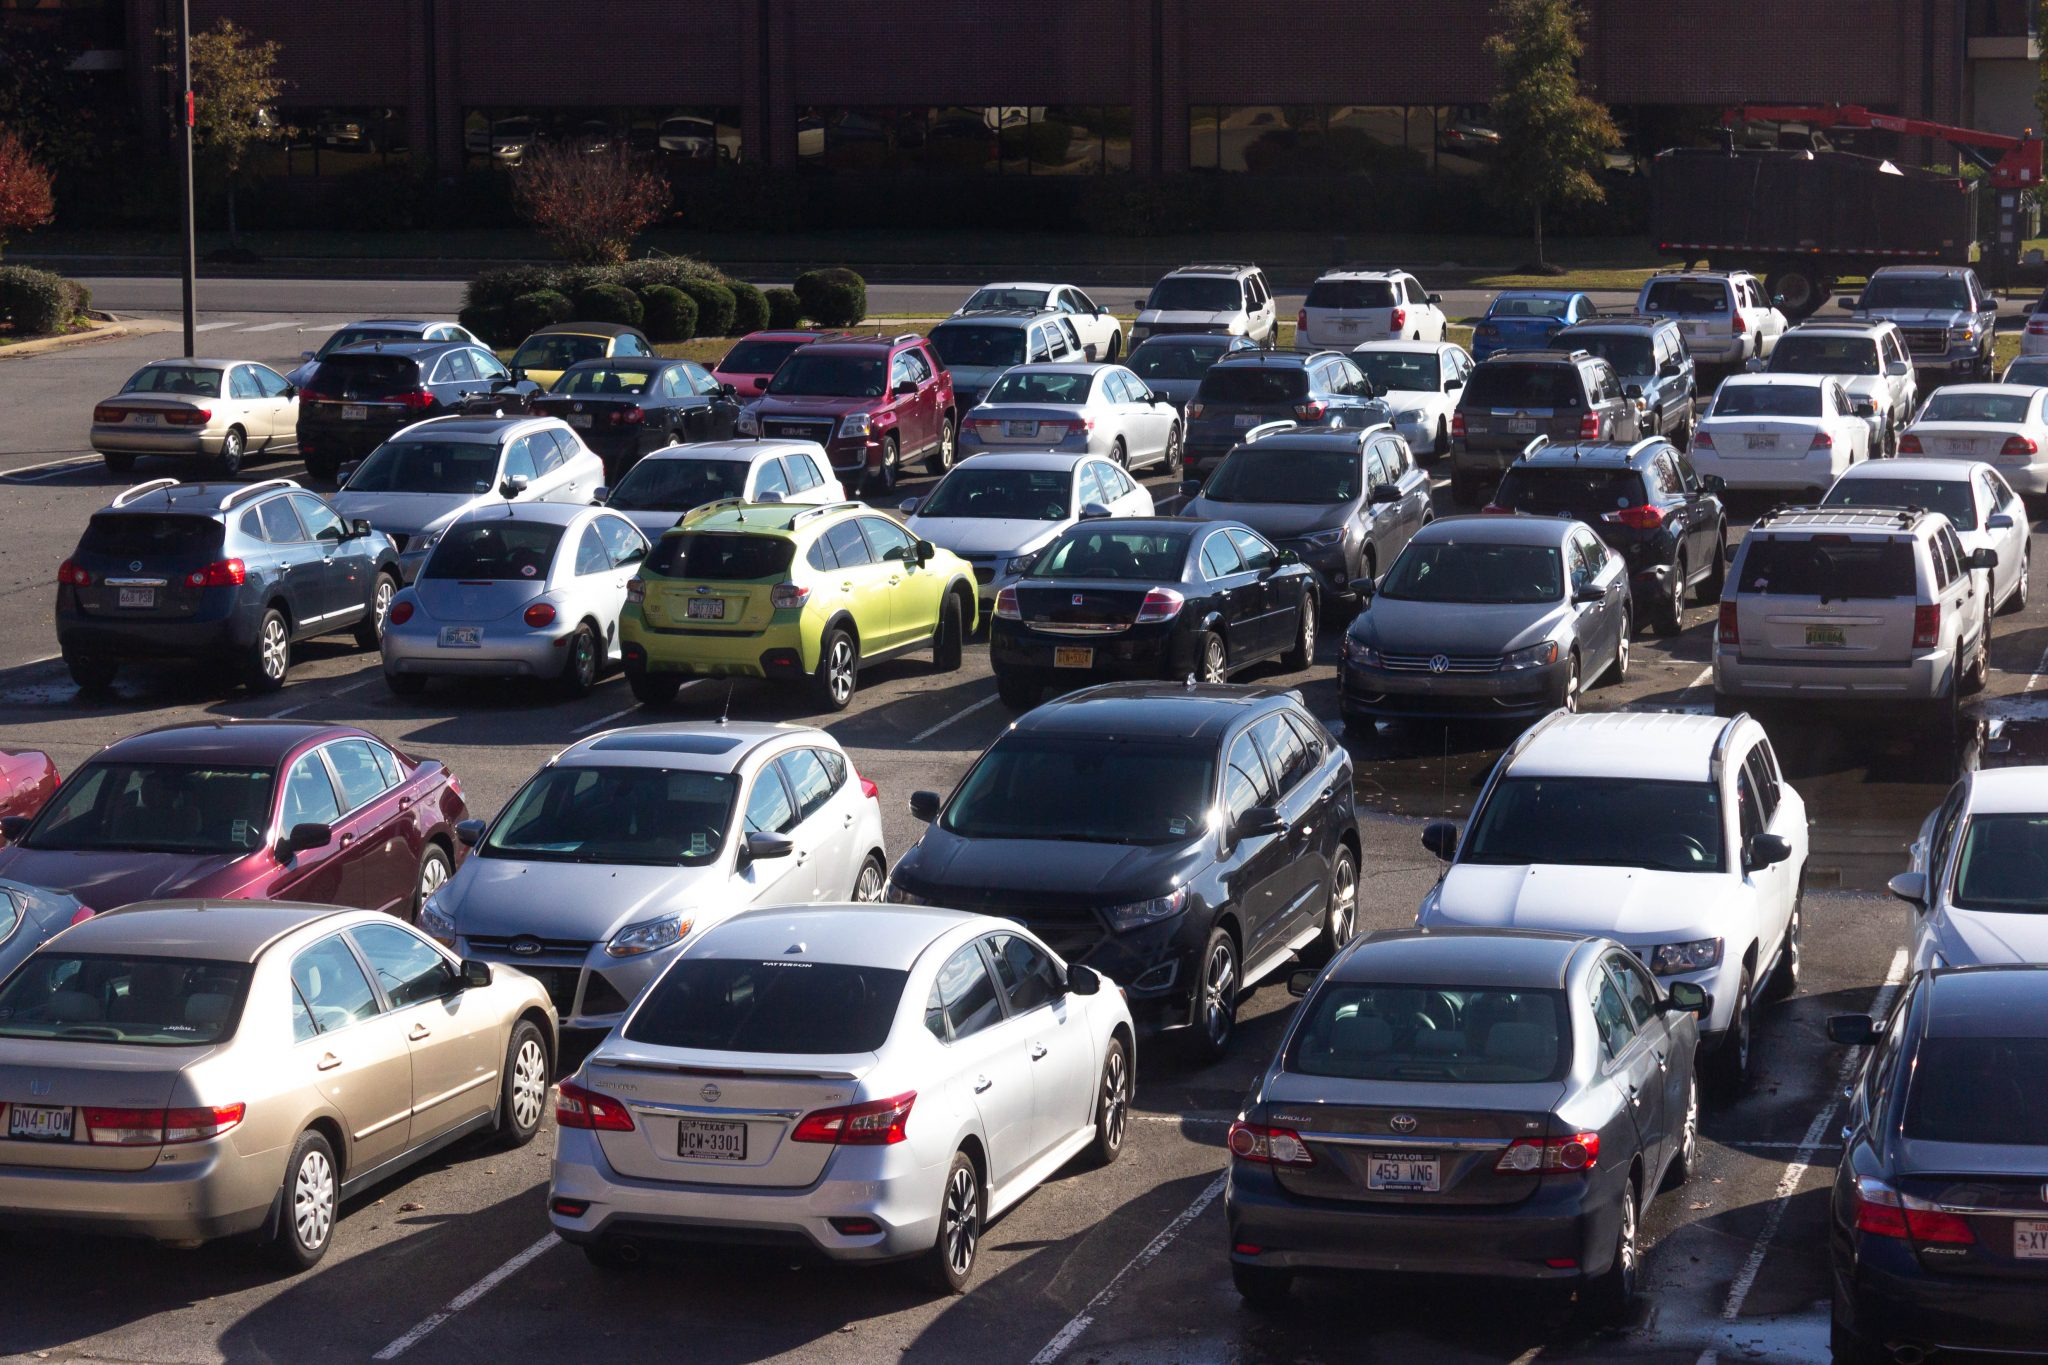 Parking remains hot campus topic | The Bison